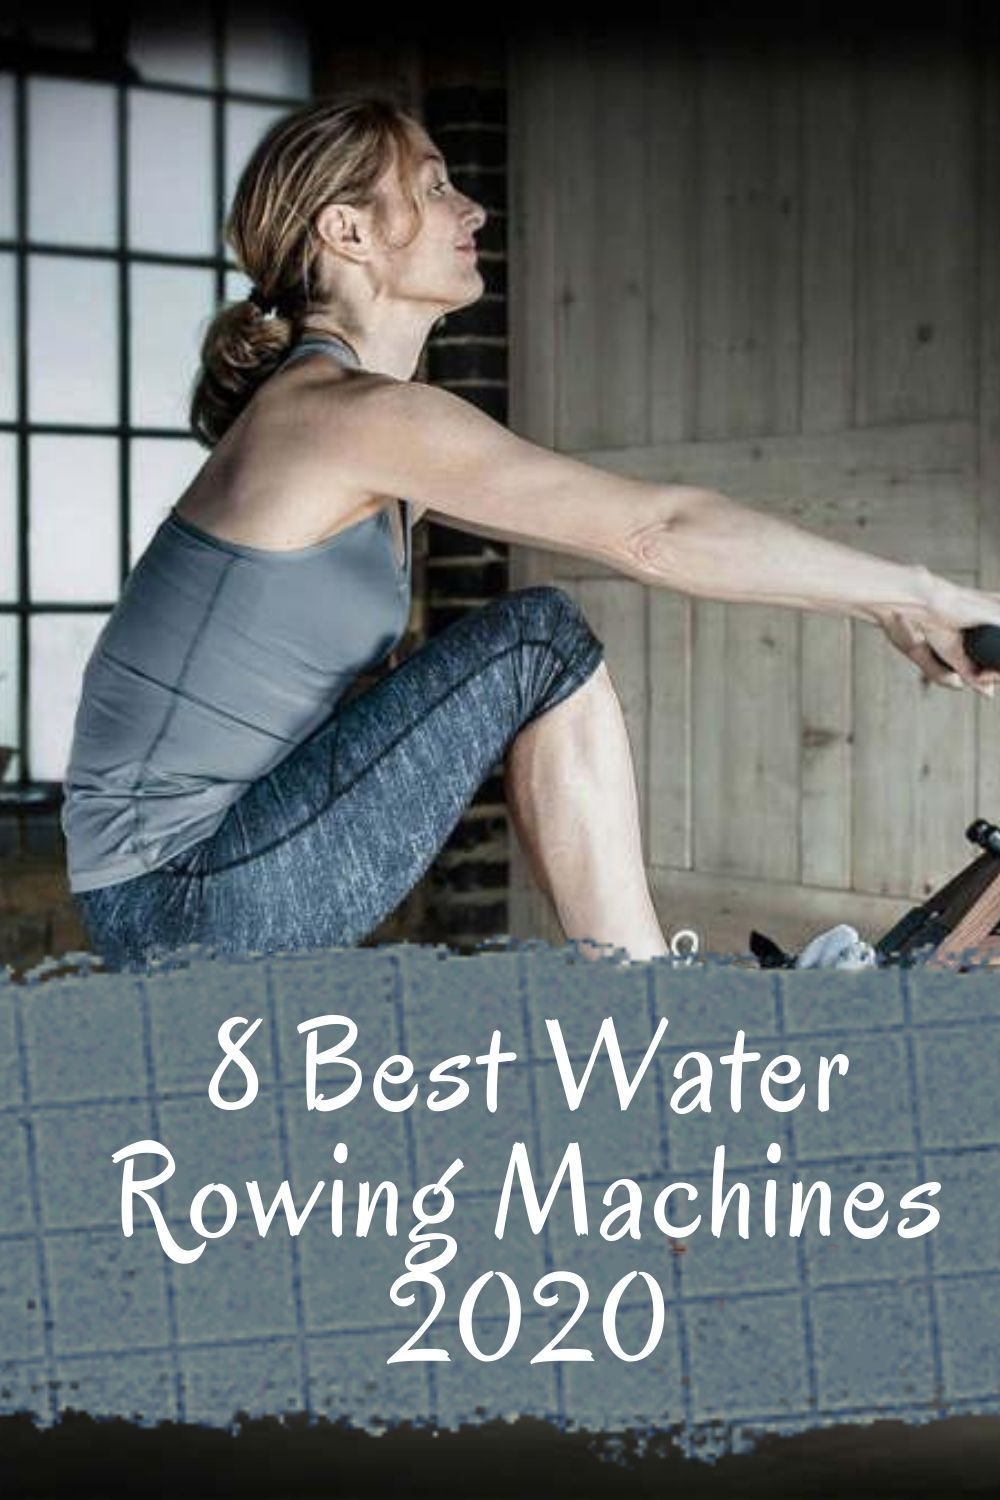 8 Best Water Rowing Machines 2020 In 2020 Rowing Machines Rowing Workout Machines